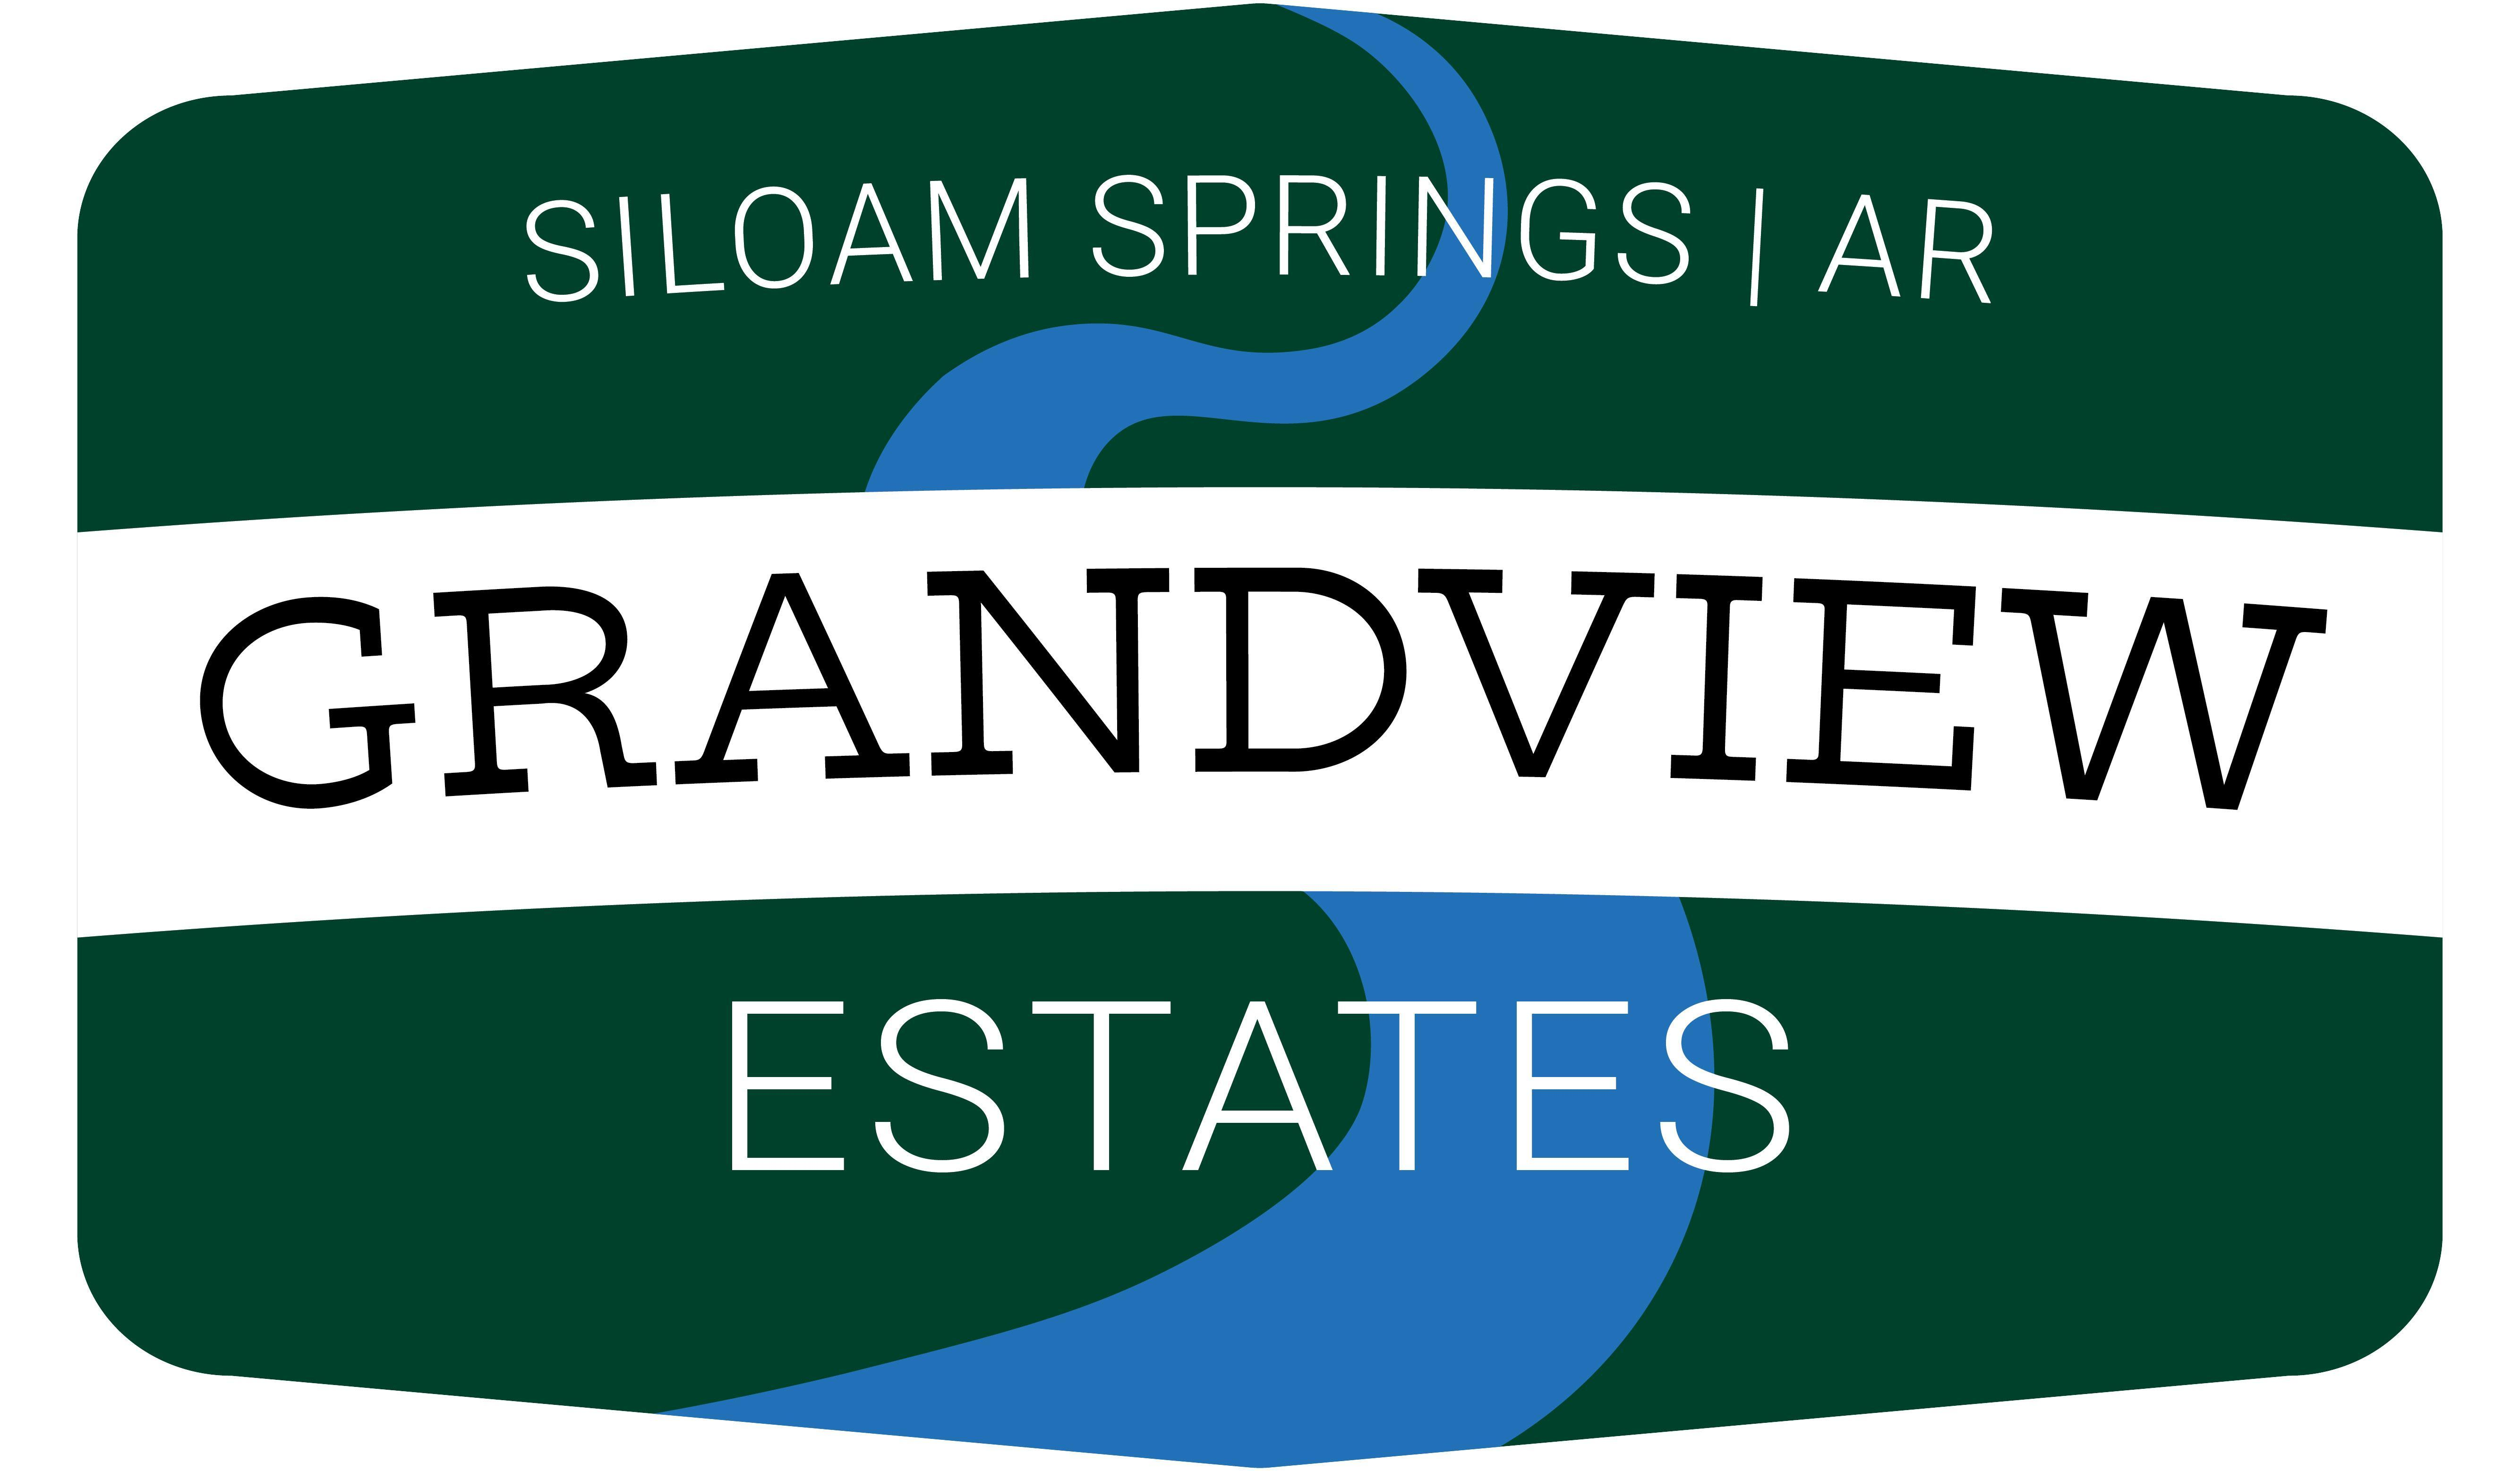 'Grandview Estates' by NW Arkansas in Fayetteville